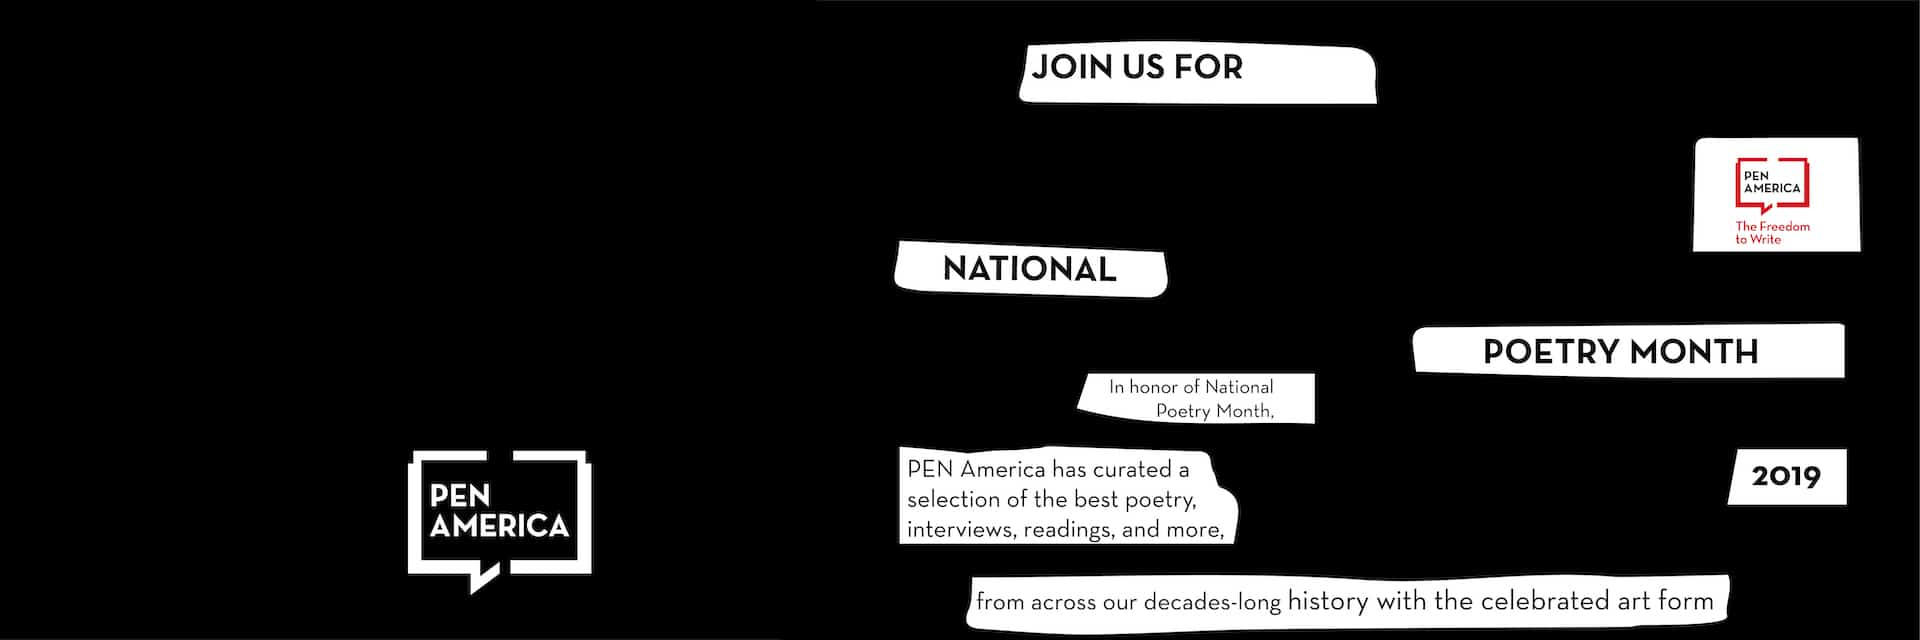 2019 National Poetry Month